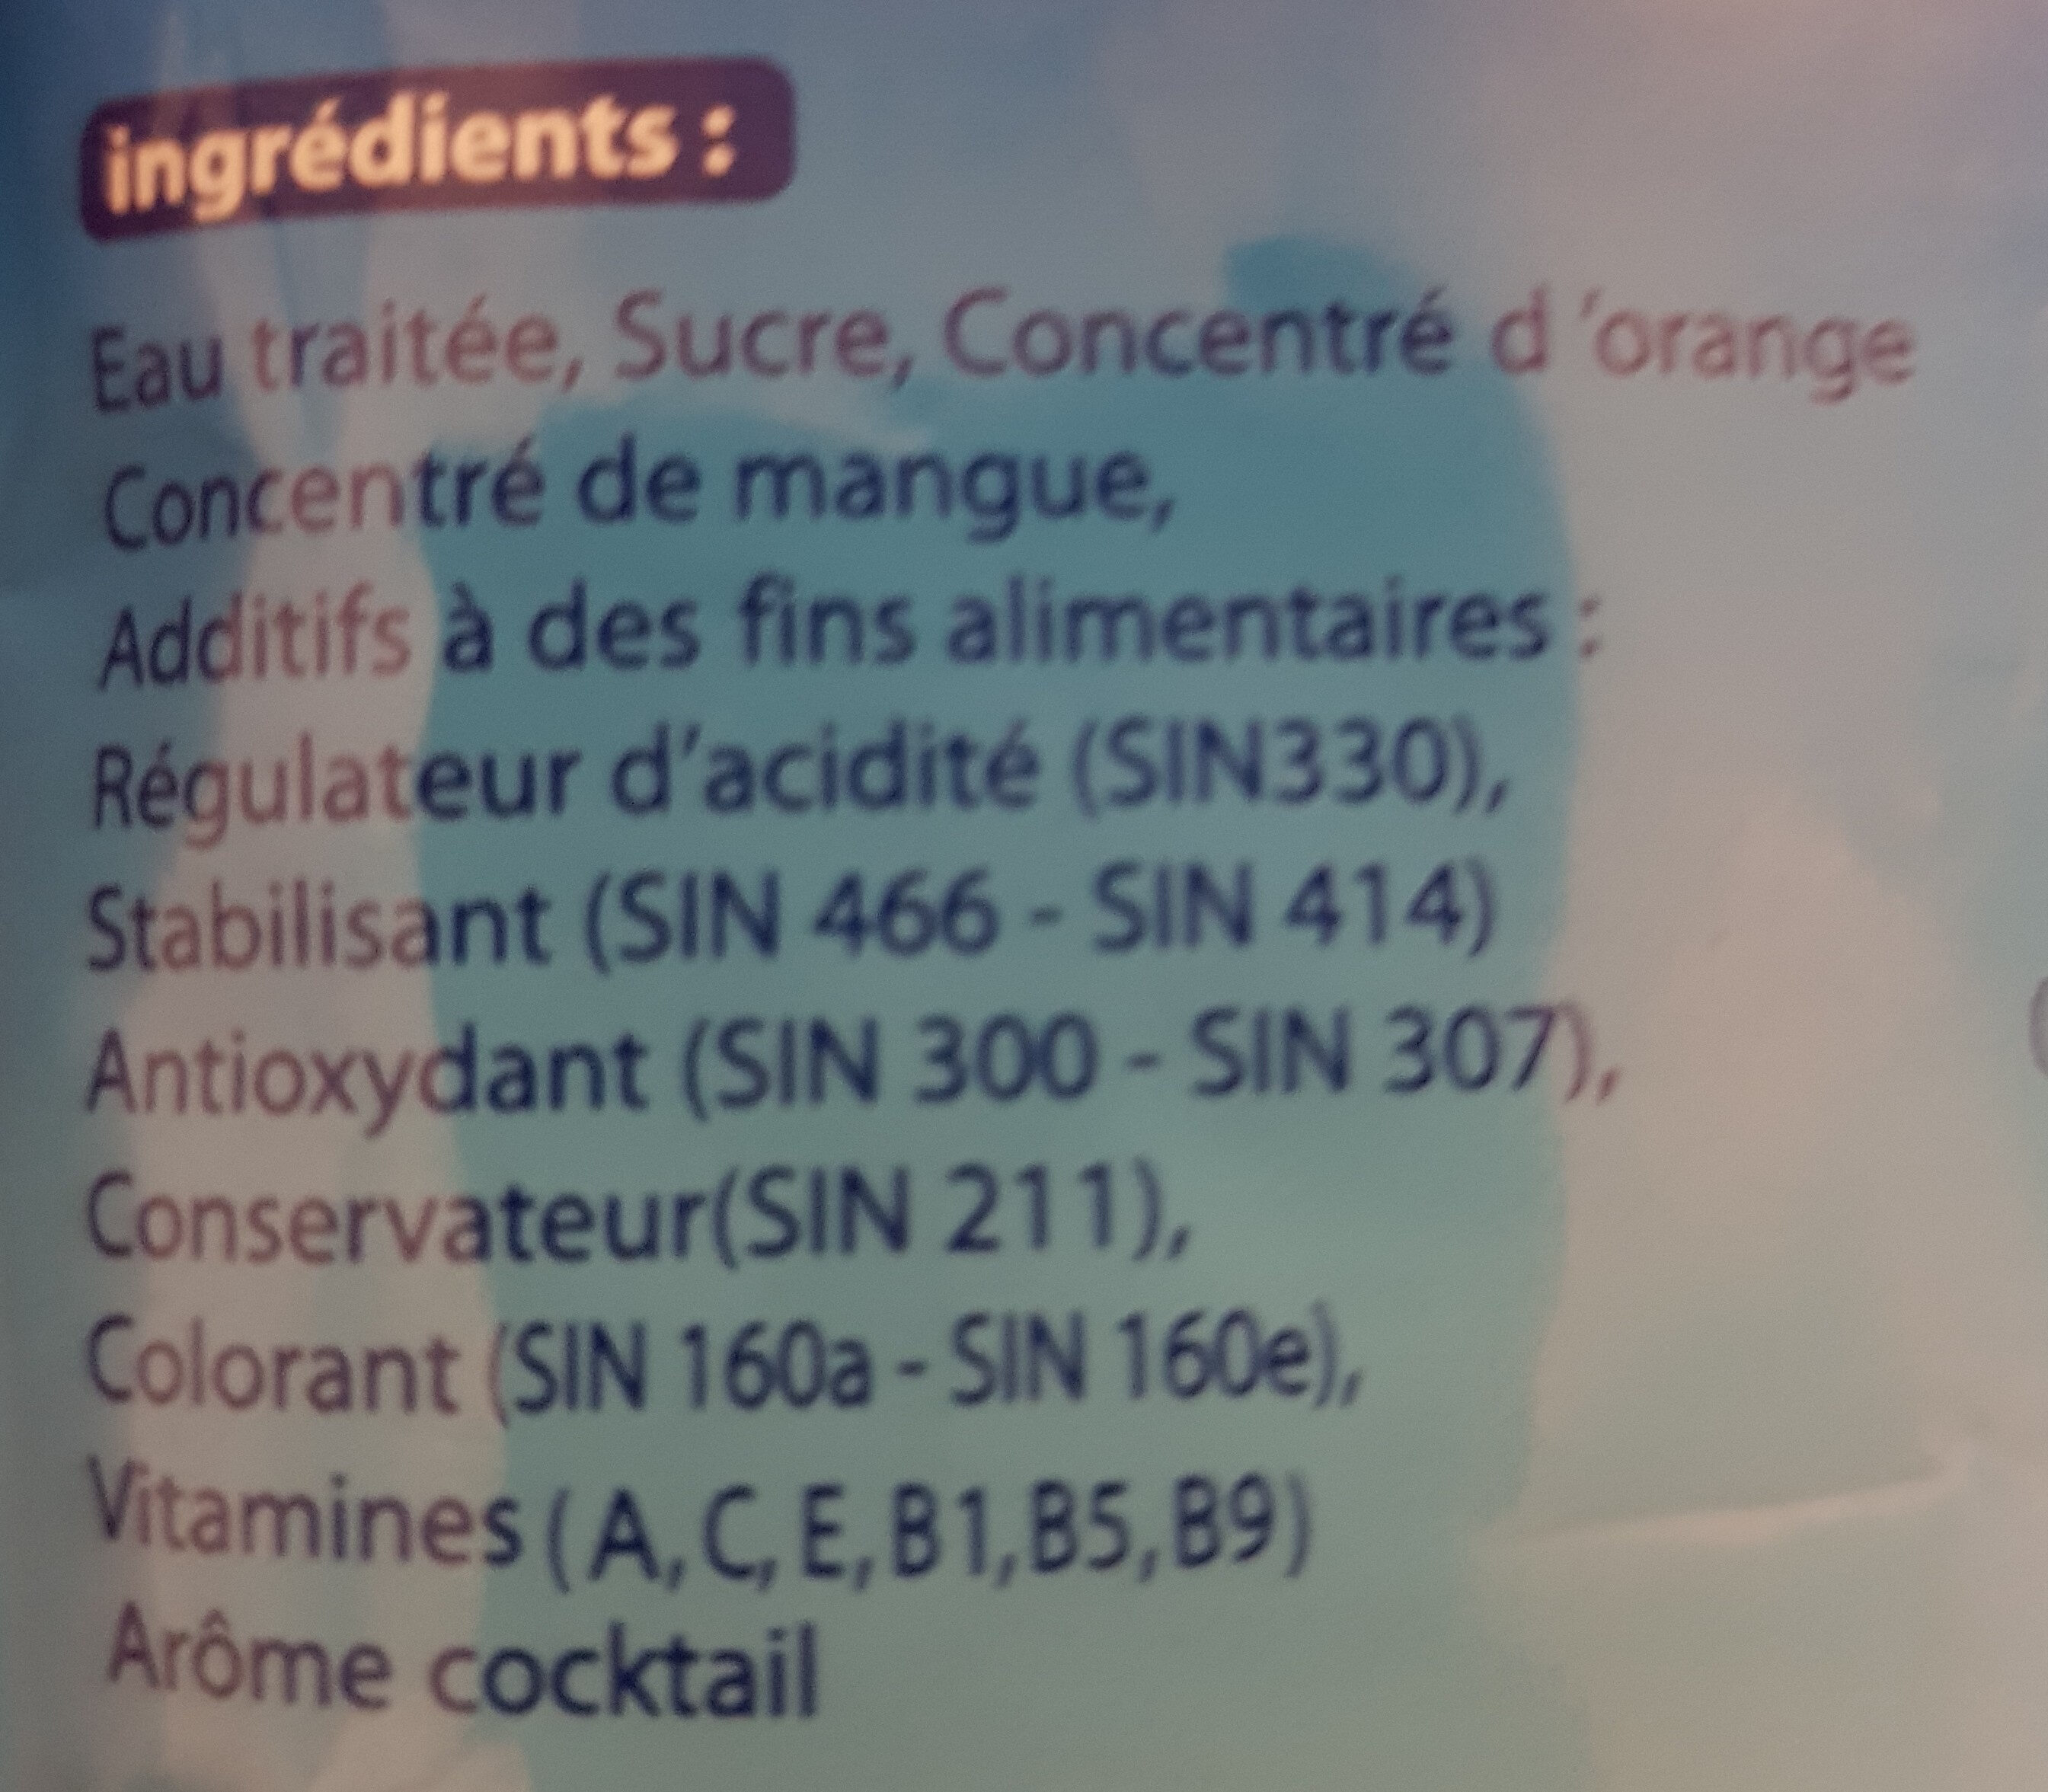 magimix - Ingredients - fr